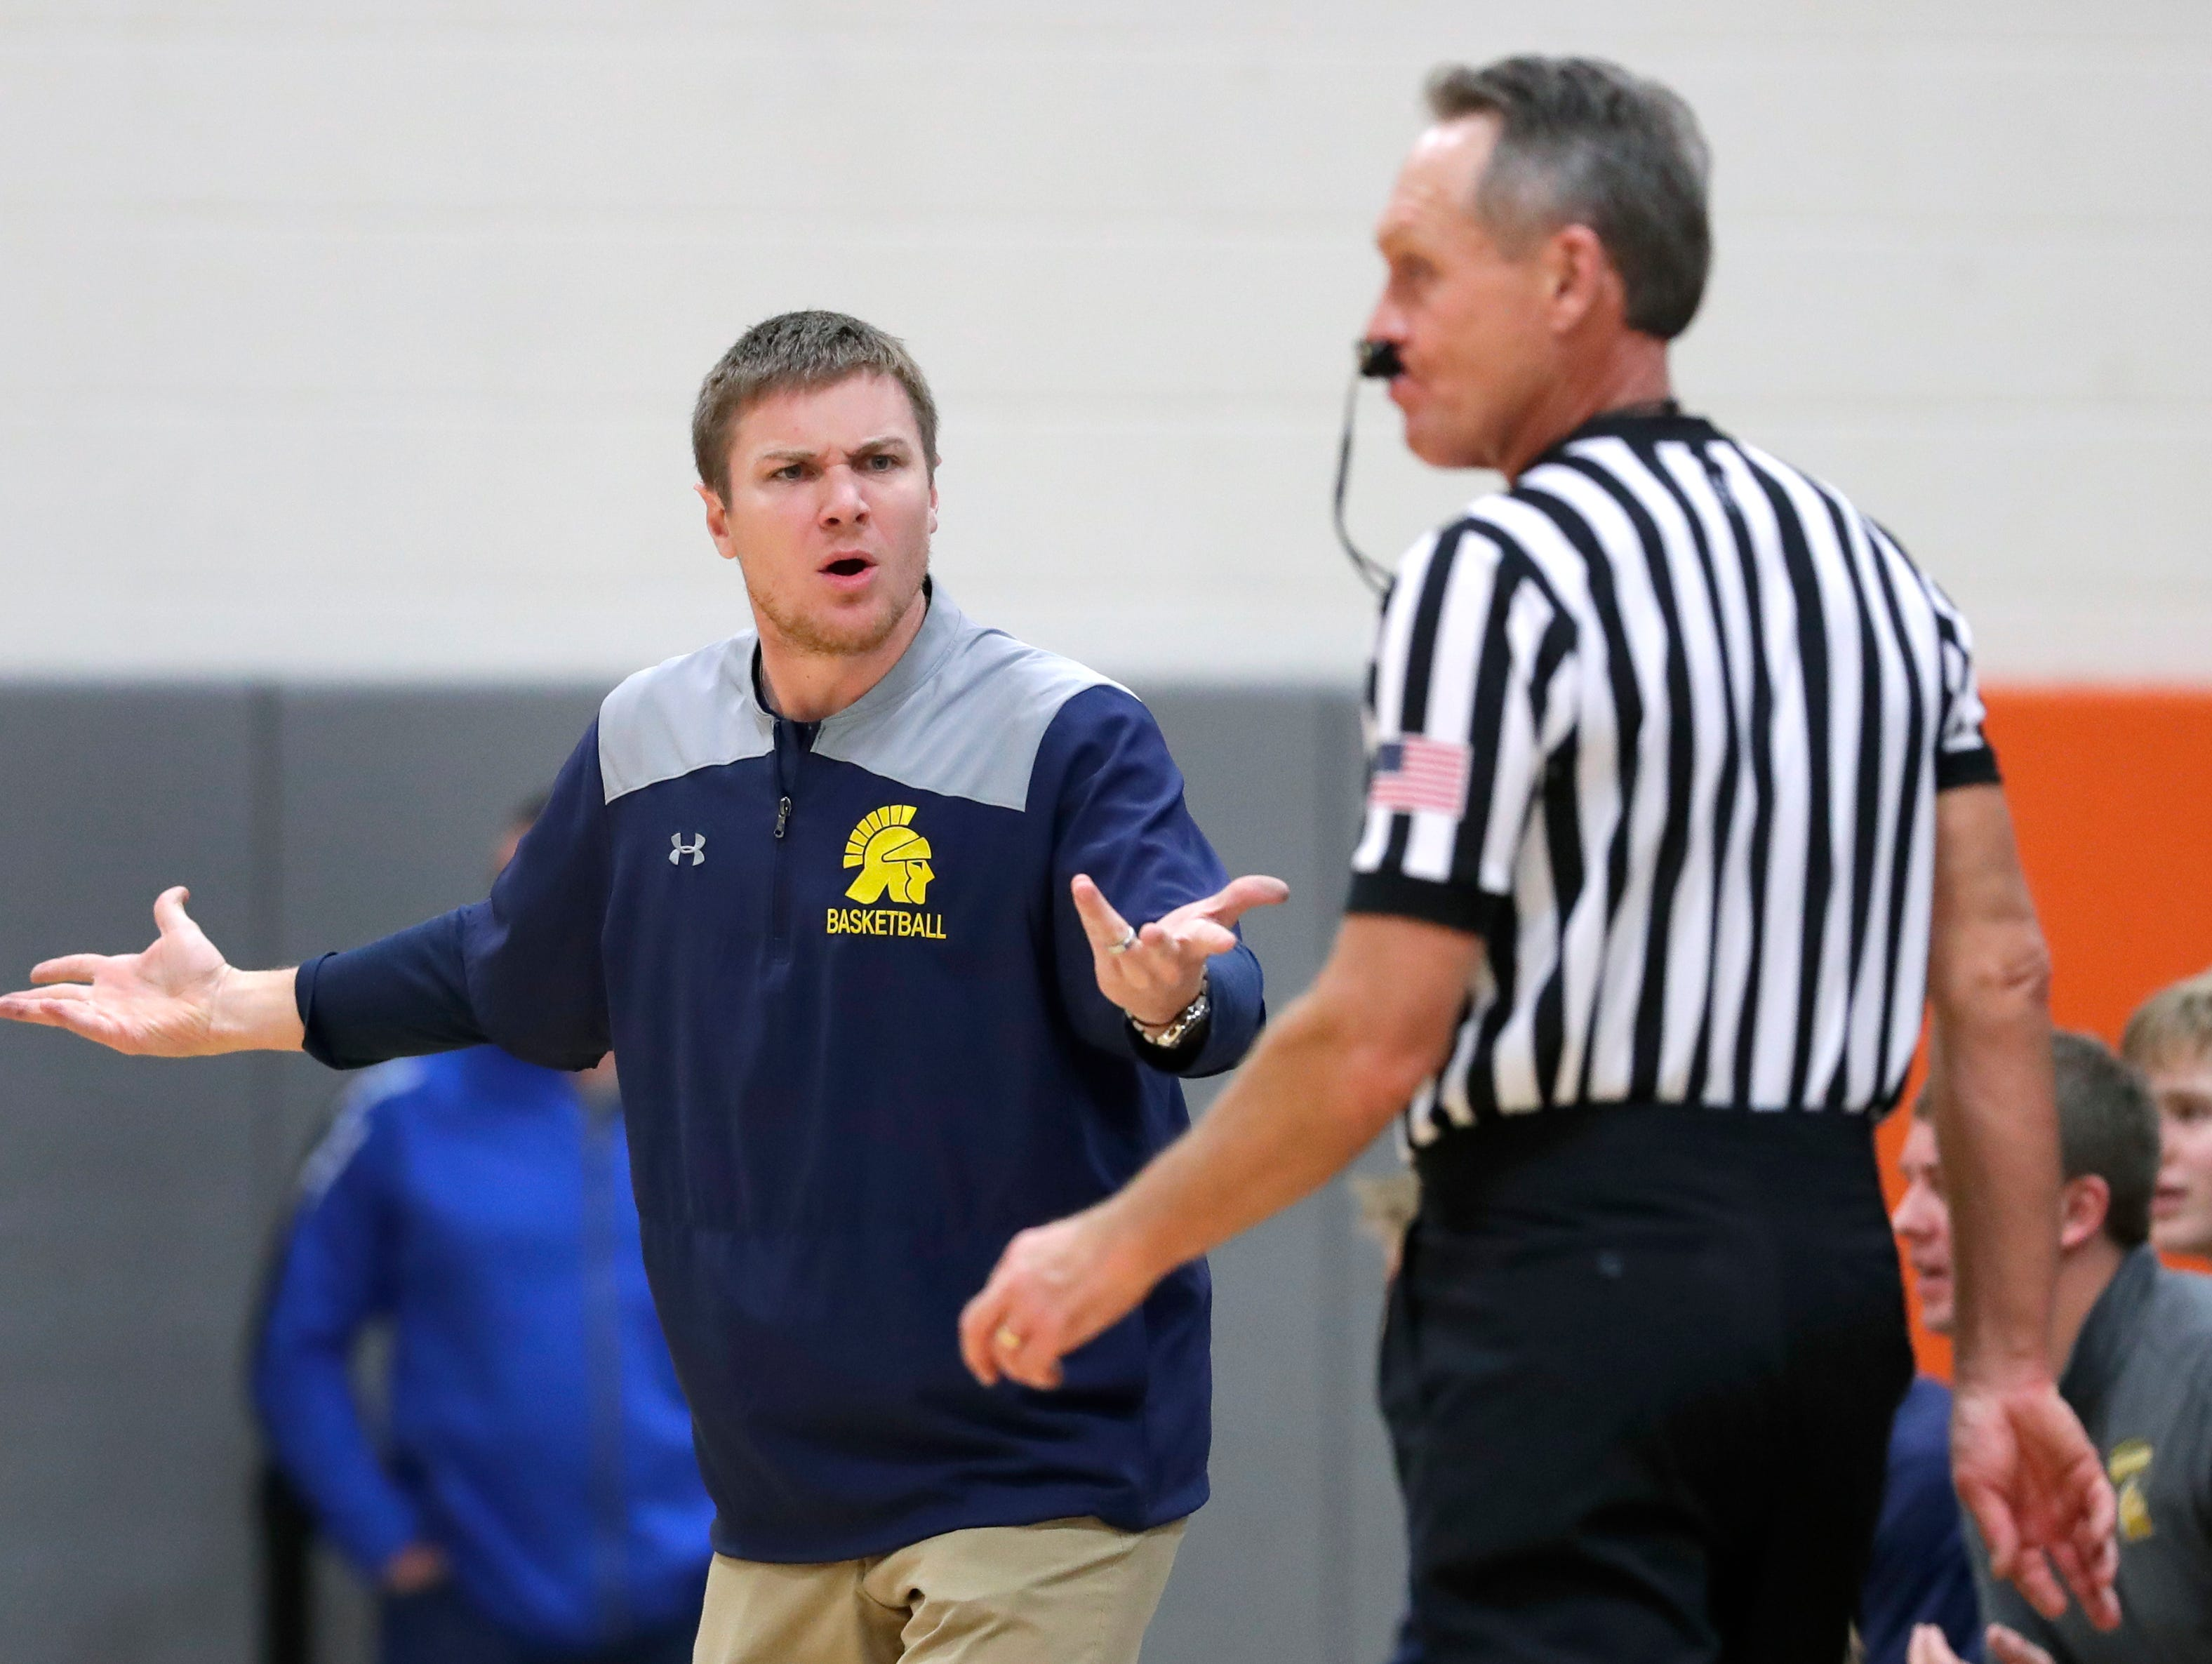 Wausau West High School's coach Nate Lemmens questions a referee's call against his team as they play Appleton West during their boys basketball game Friday, December 28, 2018, in Appleton, Wis. Dan Powers/USA TODAY NETWORK-Wisconsin